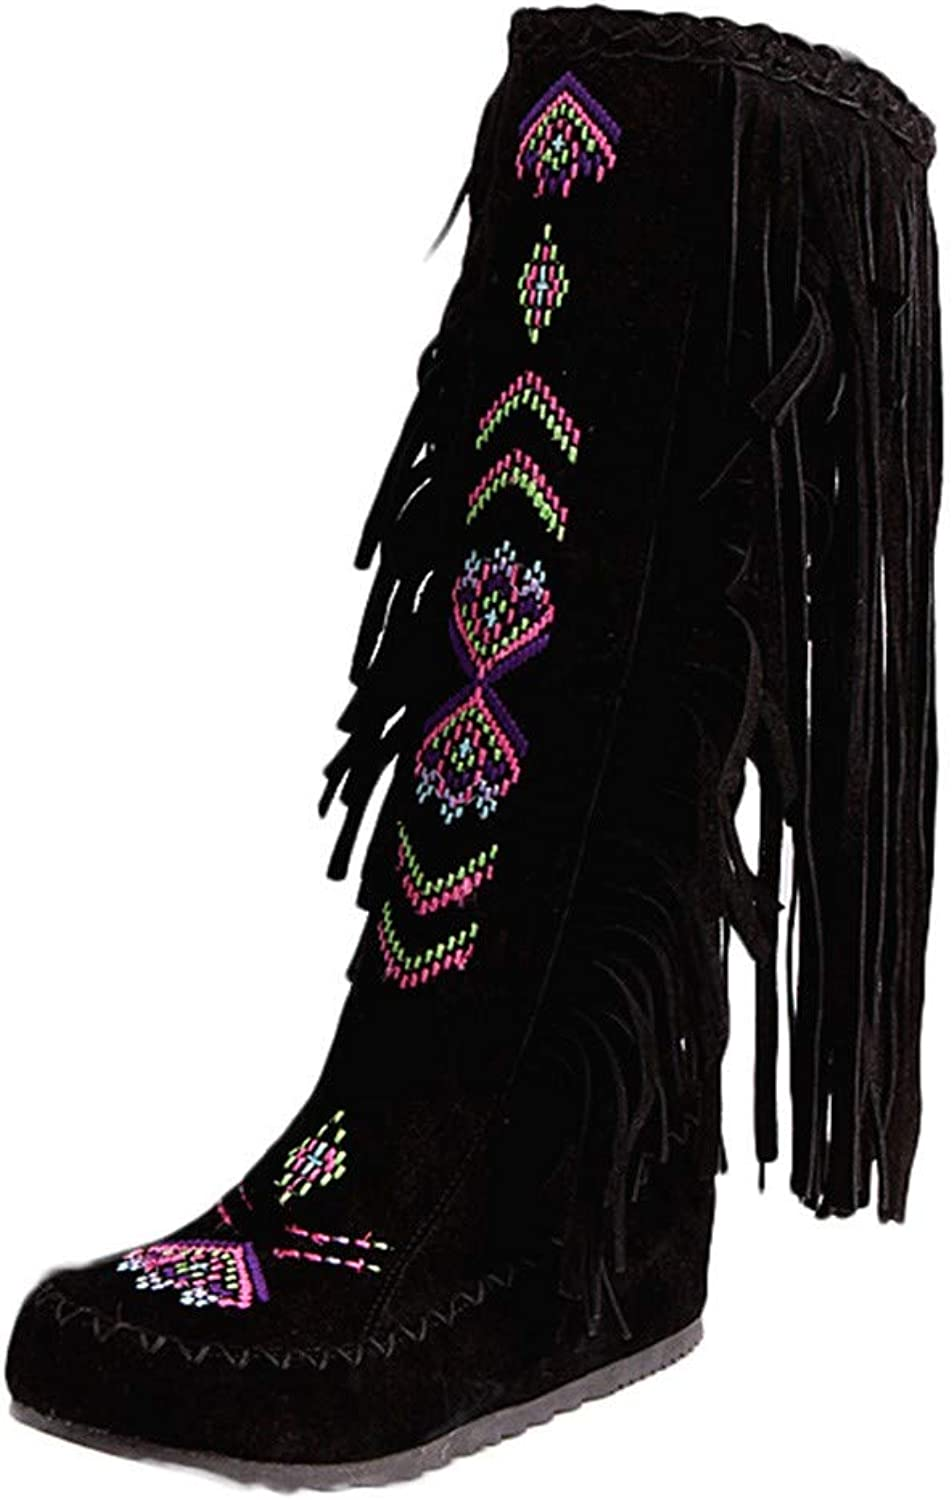 PENATE Women's Traditional Tassel Martin Boots Girl's Winter Warm Knee High Embroidery Wedge Snow shoes